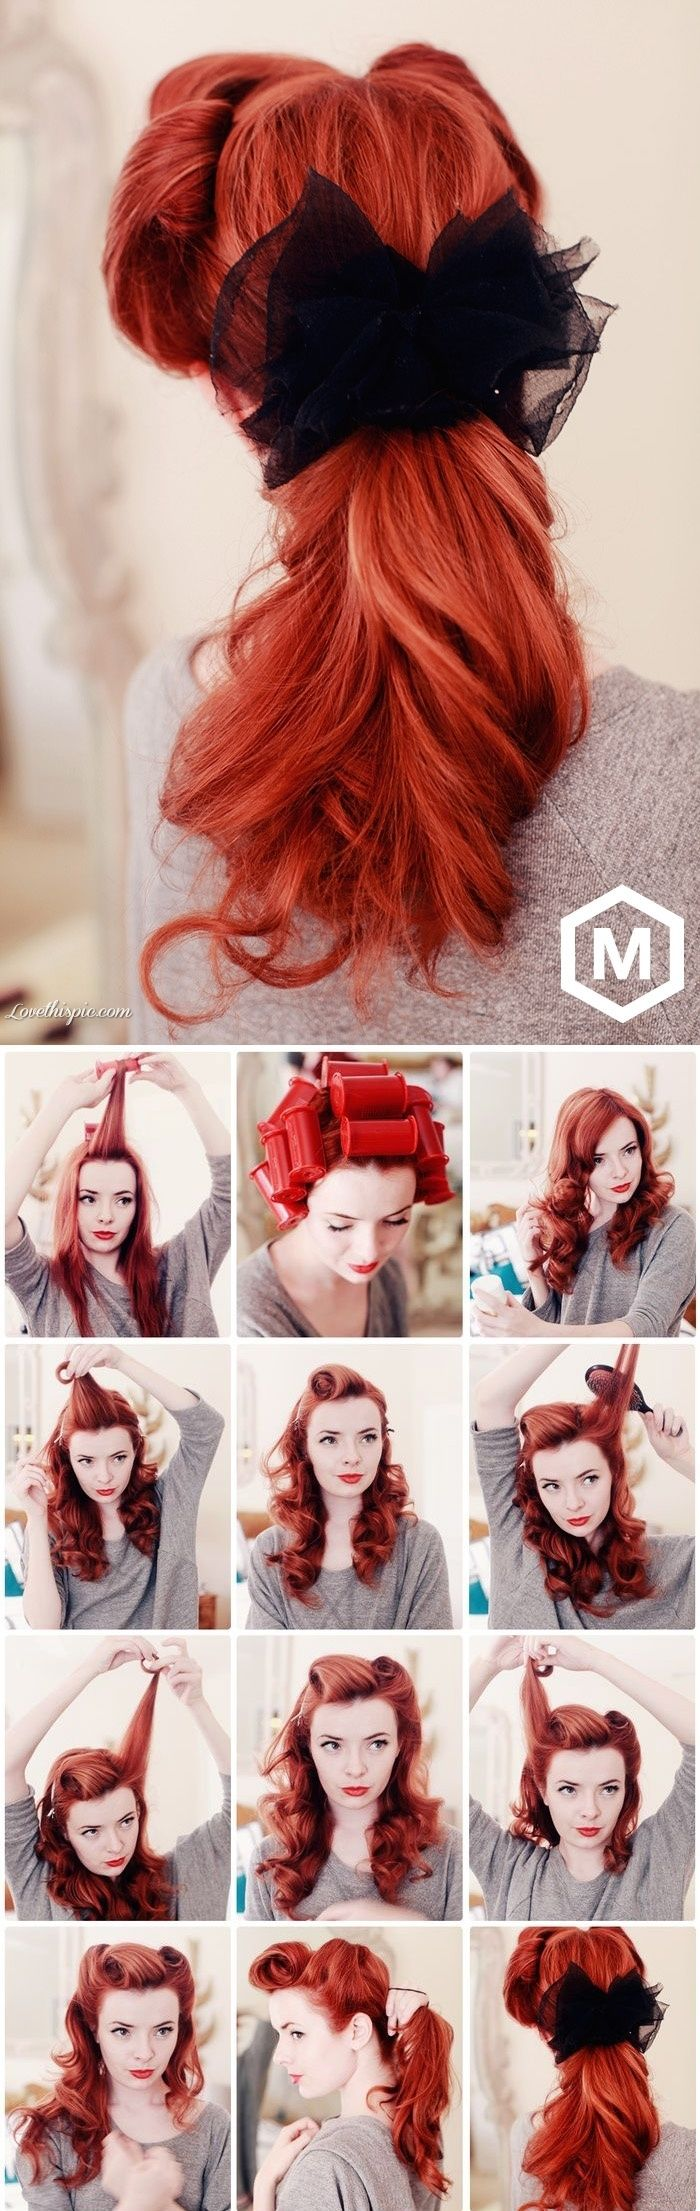 DIY Vintage Hairstyle Diy Pinup Hair Style Easy Fashion Beauty Free Wire Name Information FREE NAIL ART INFORMATION More